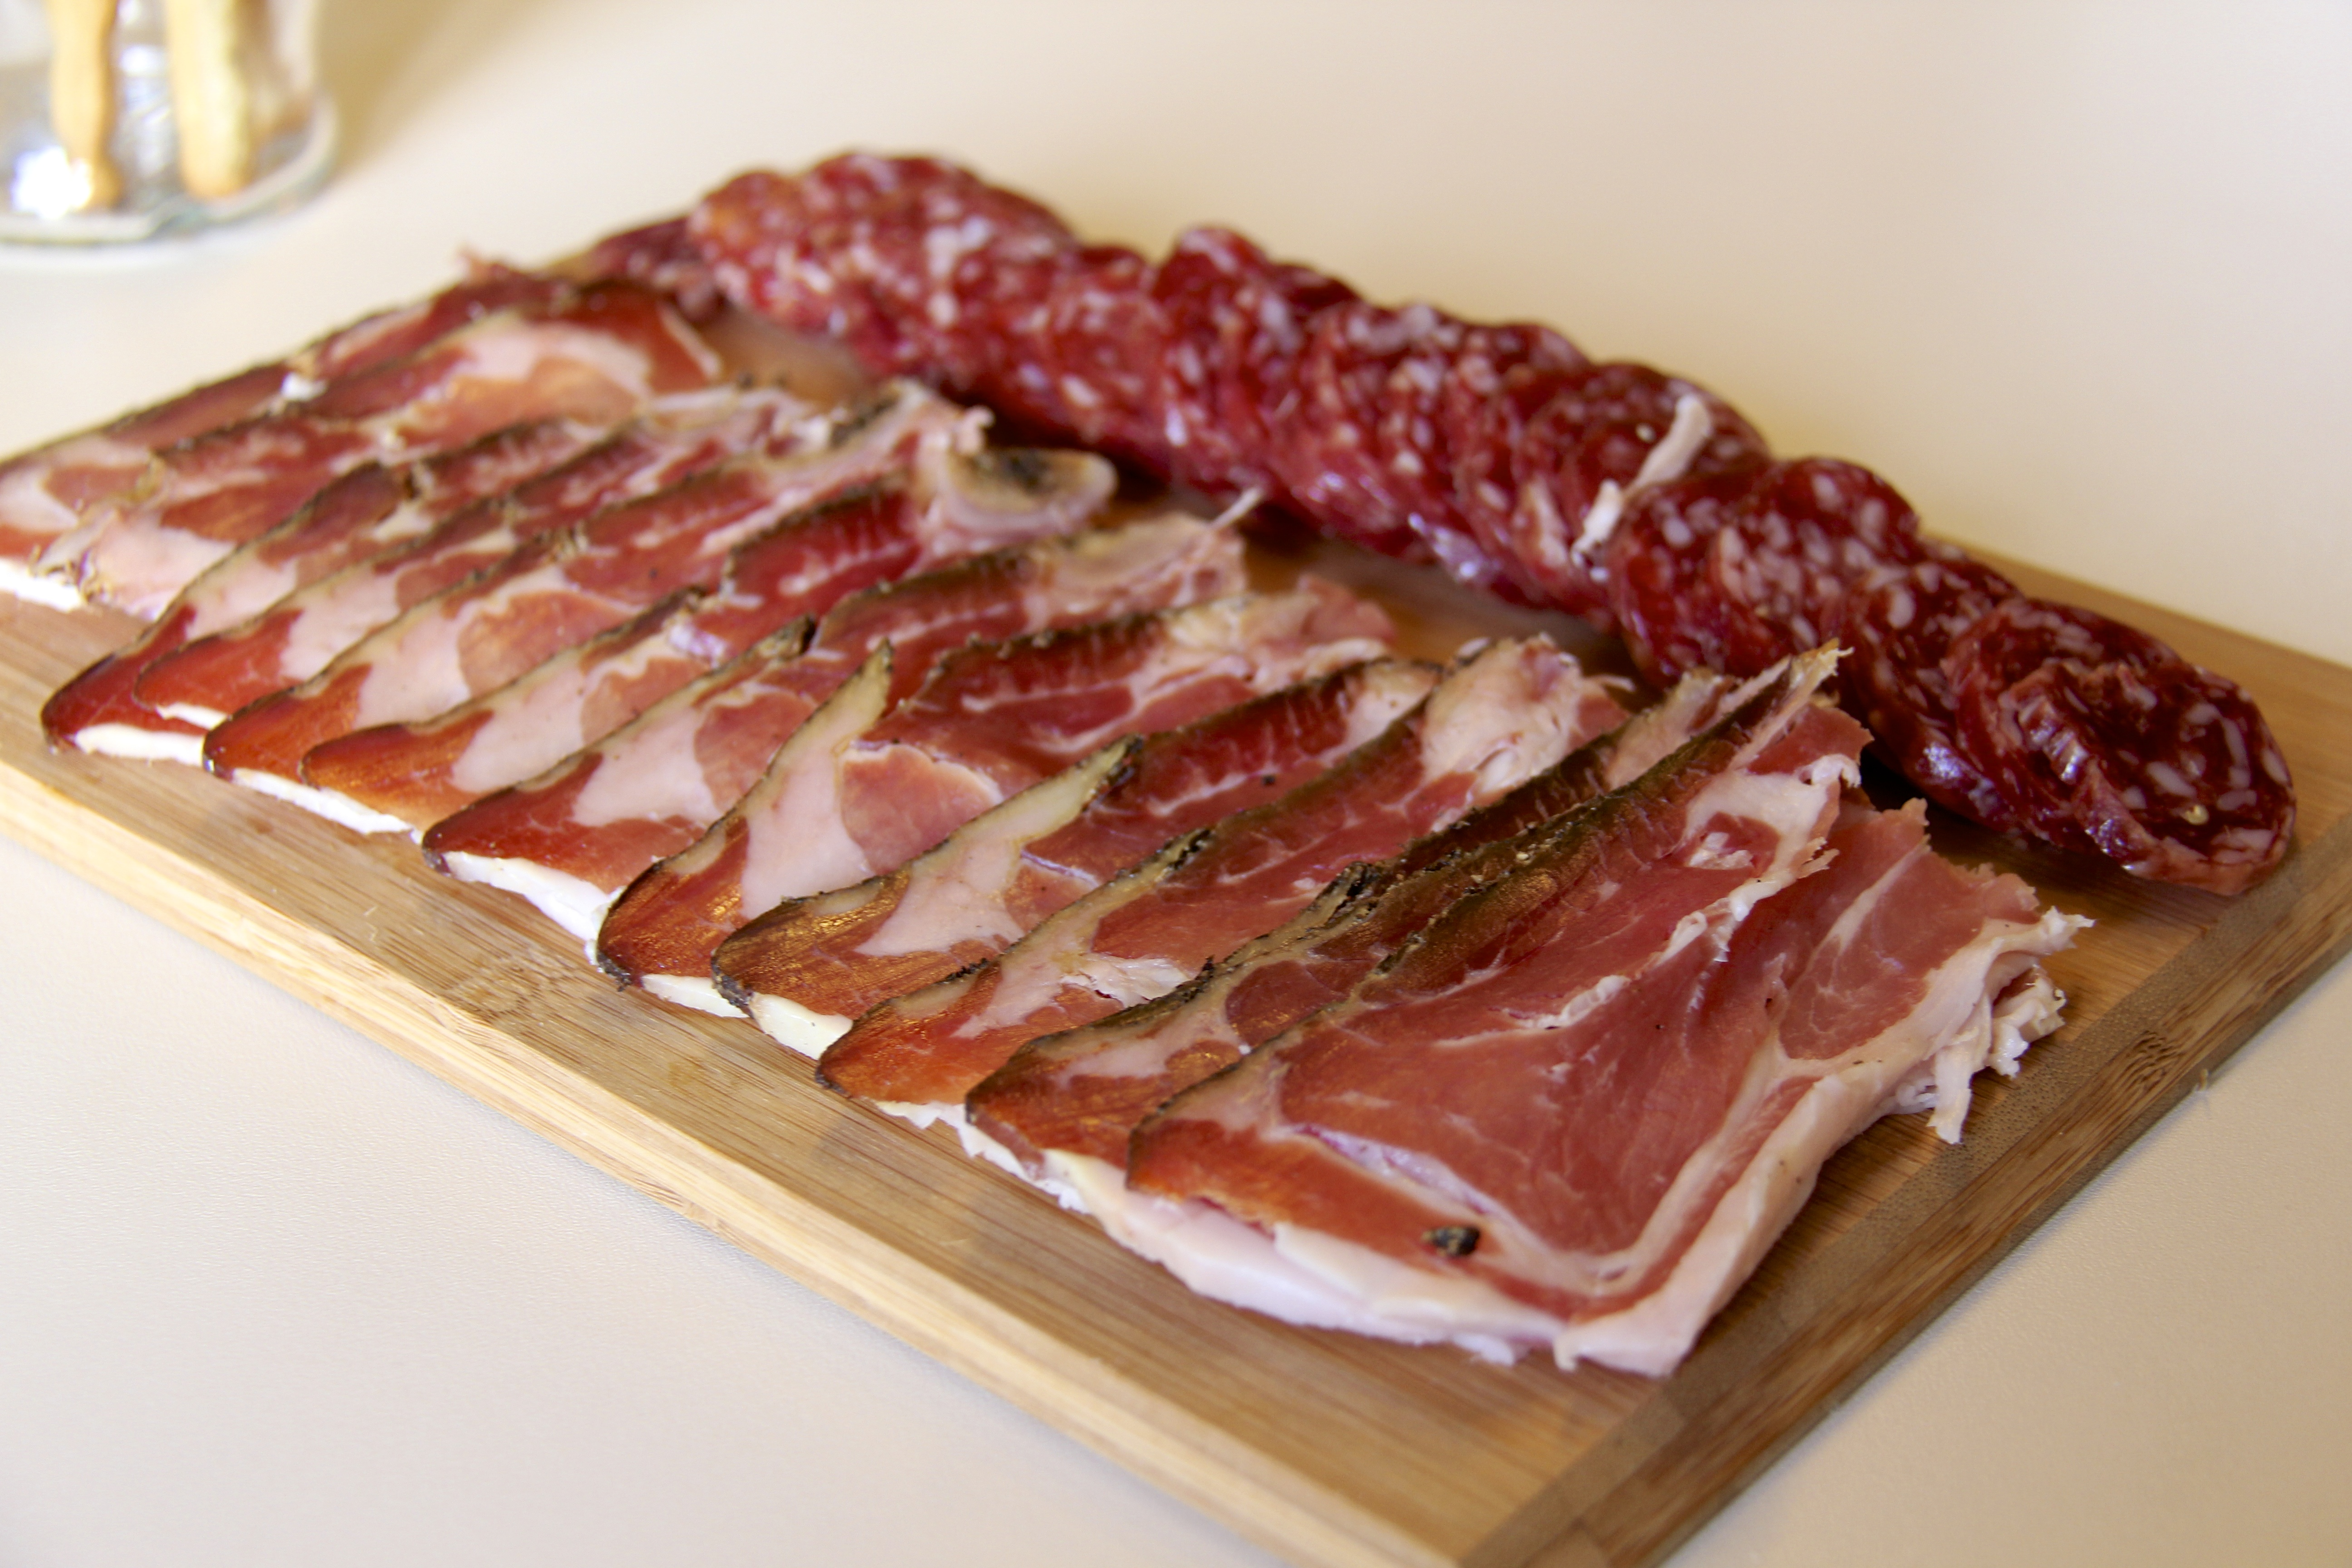 A Plate of Salami and Speck